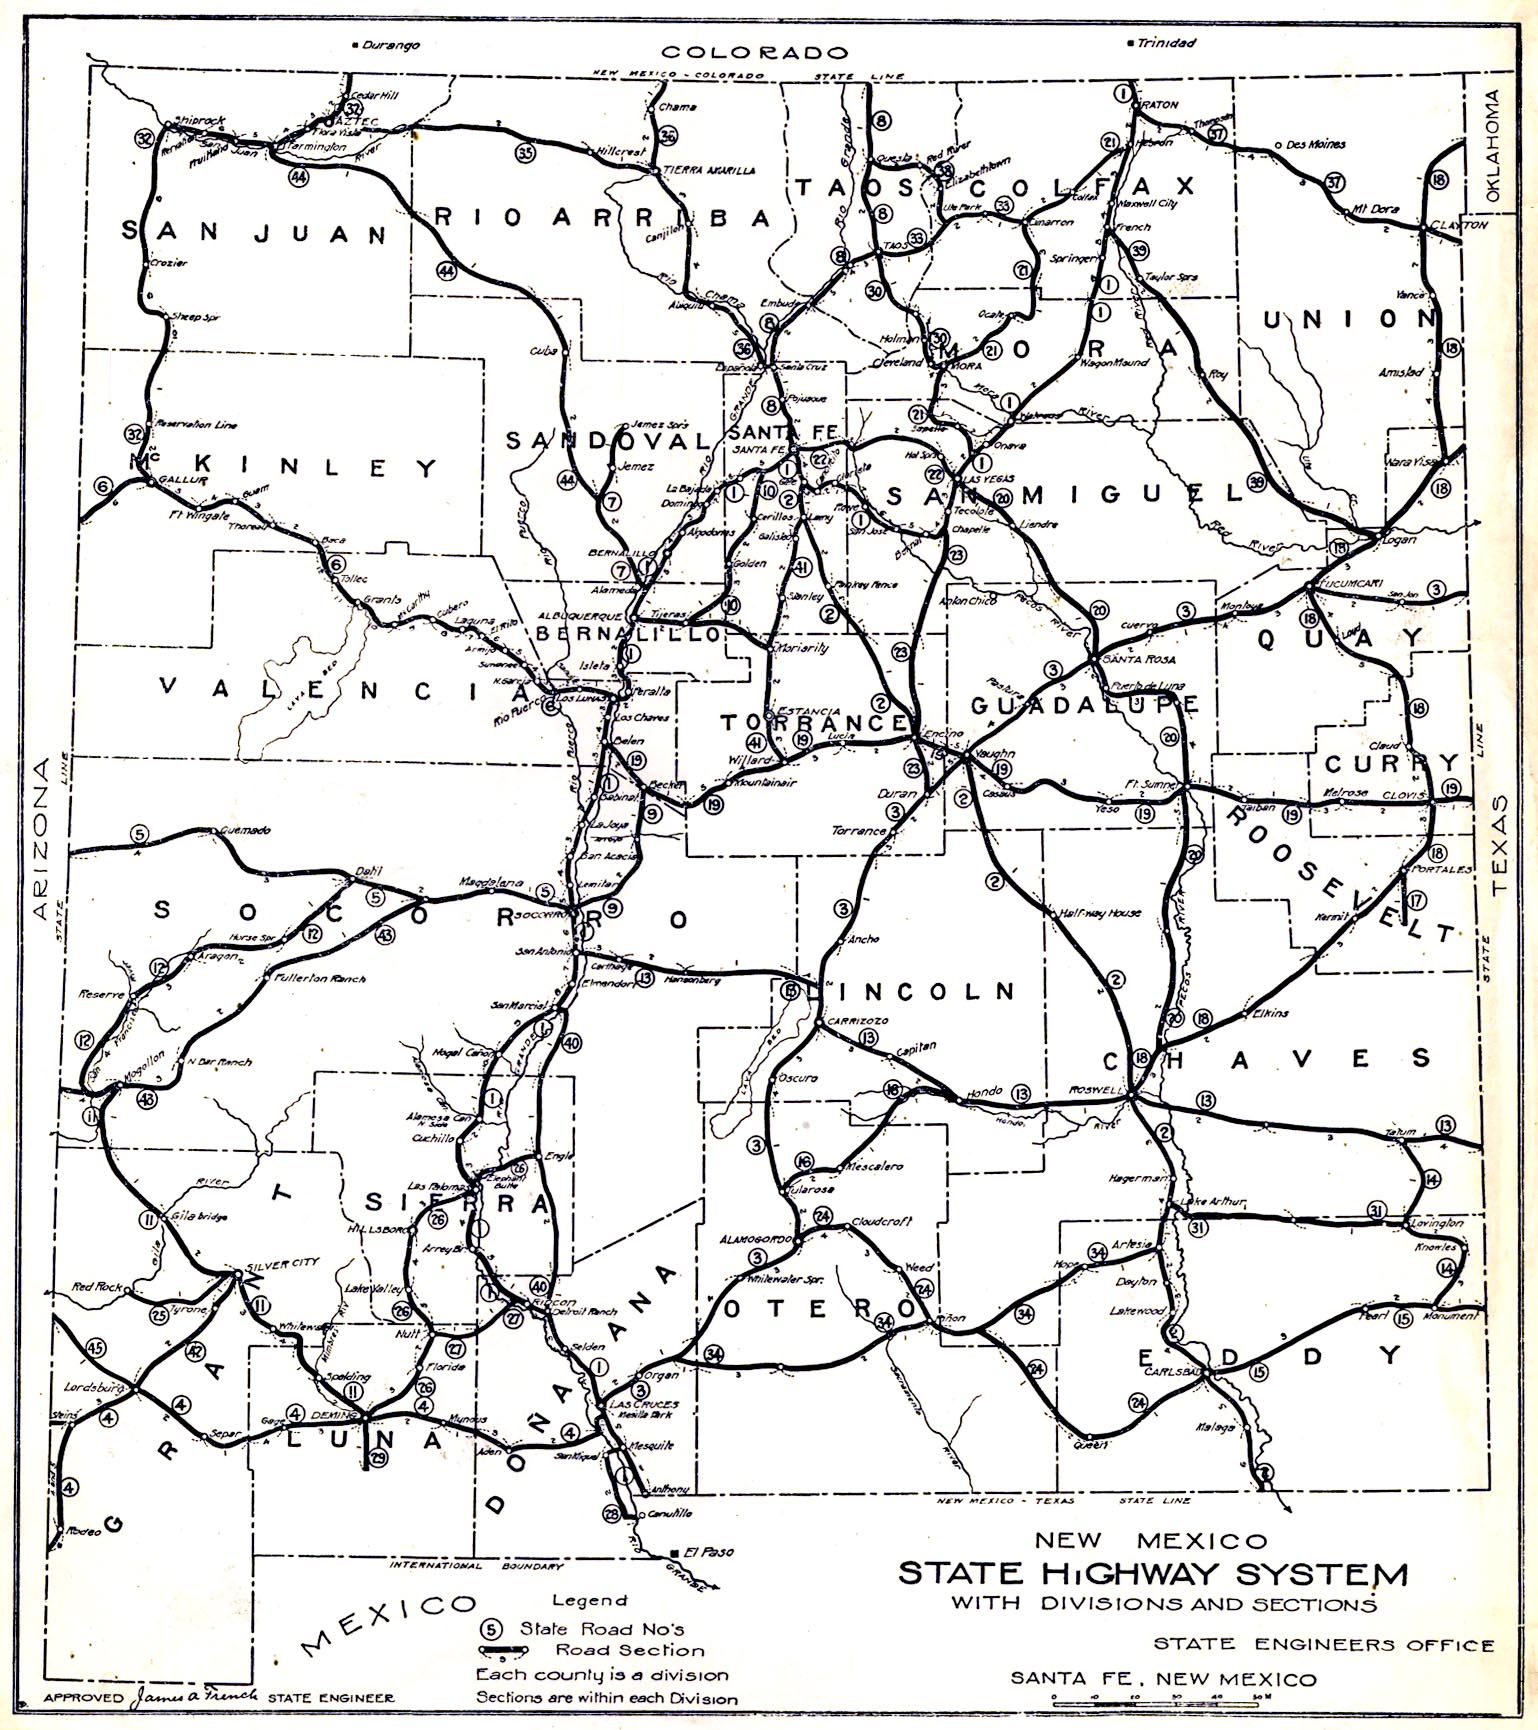 1914 map of New Mexico